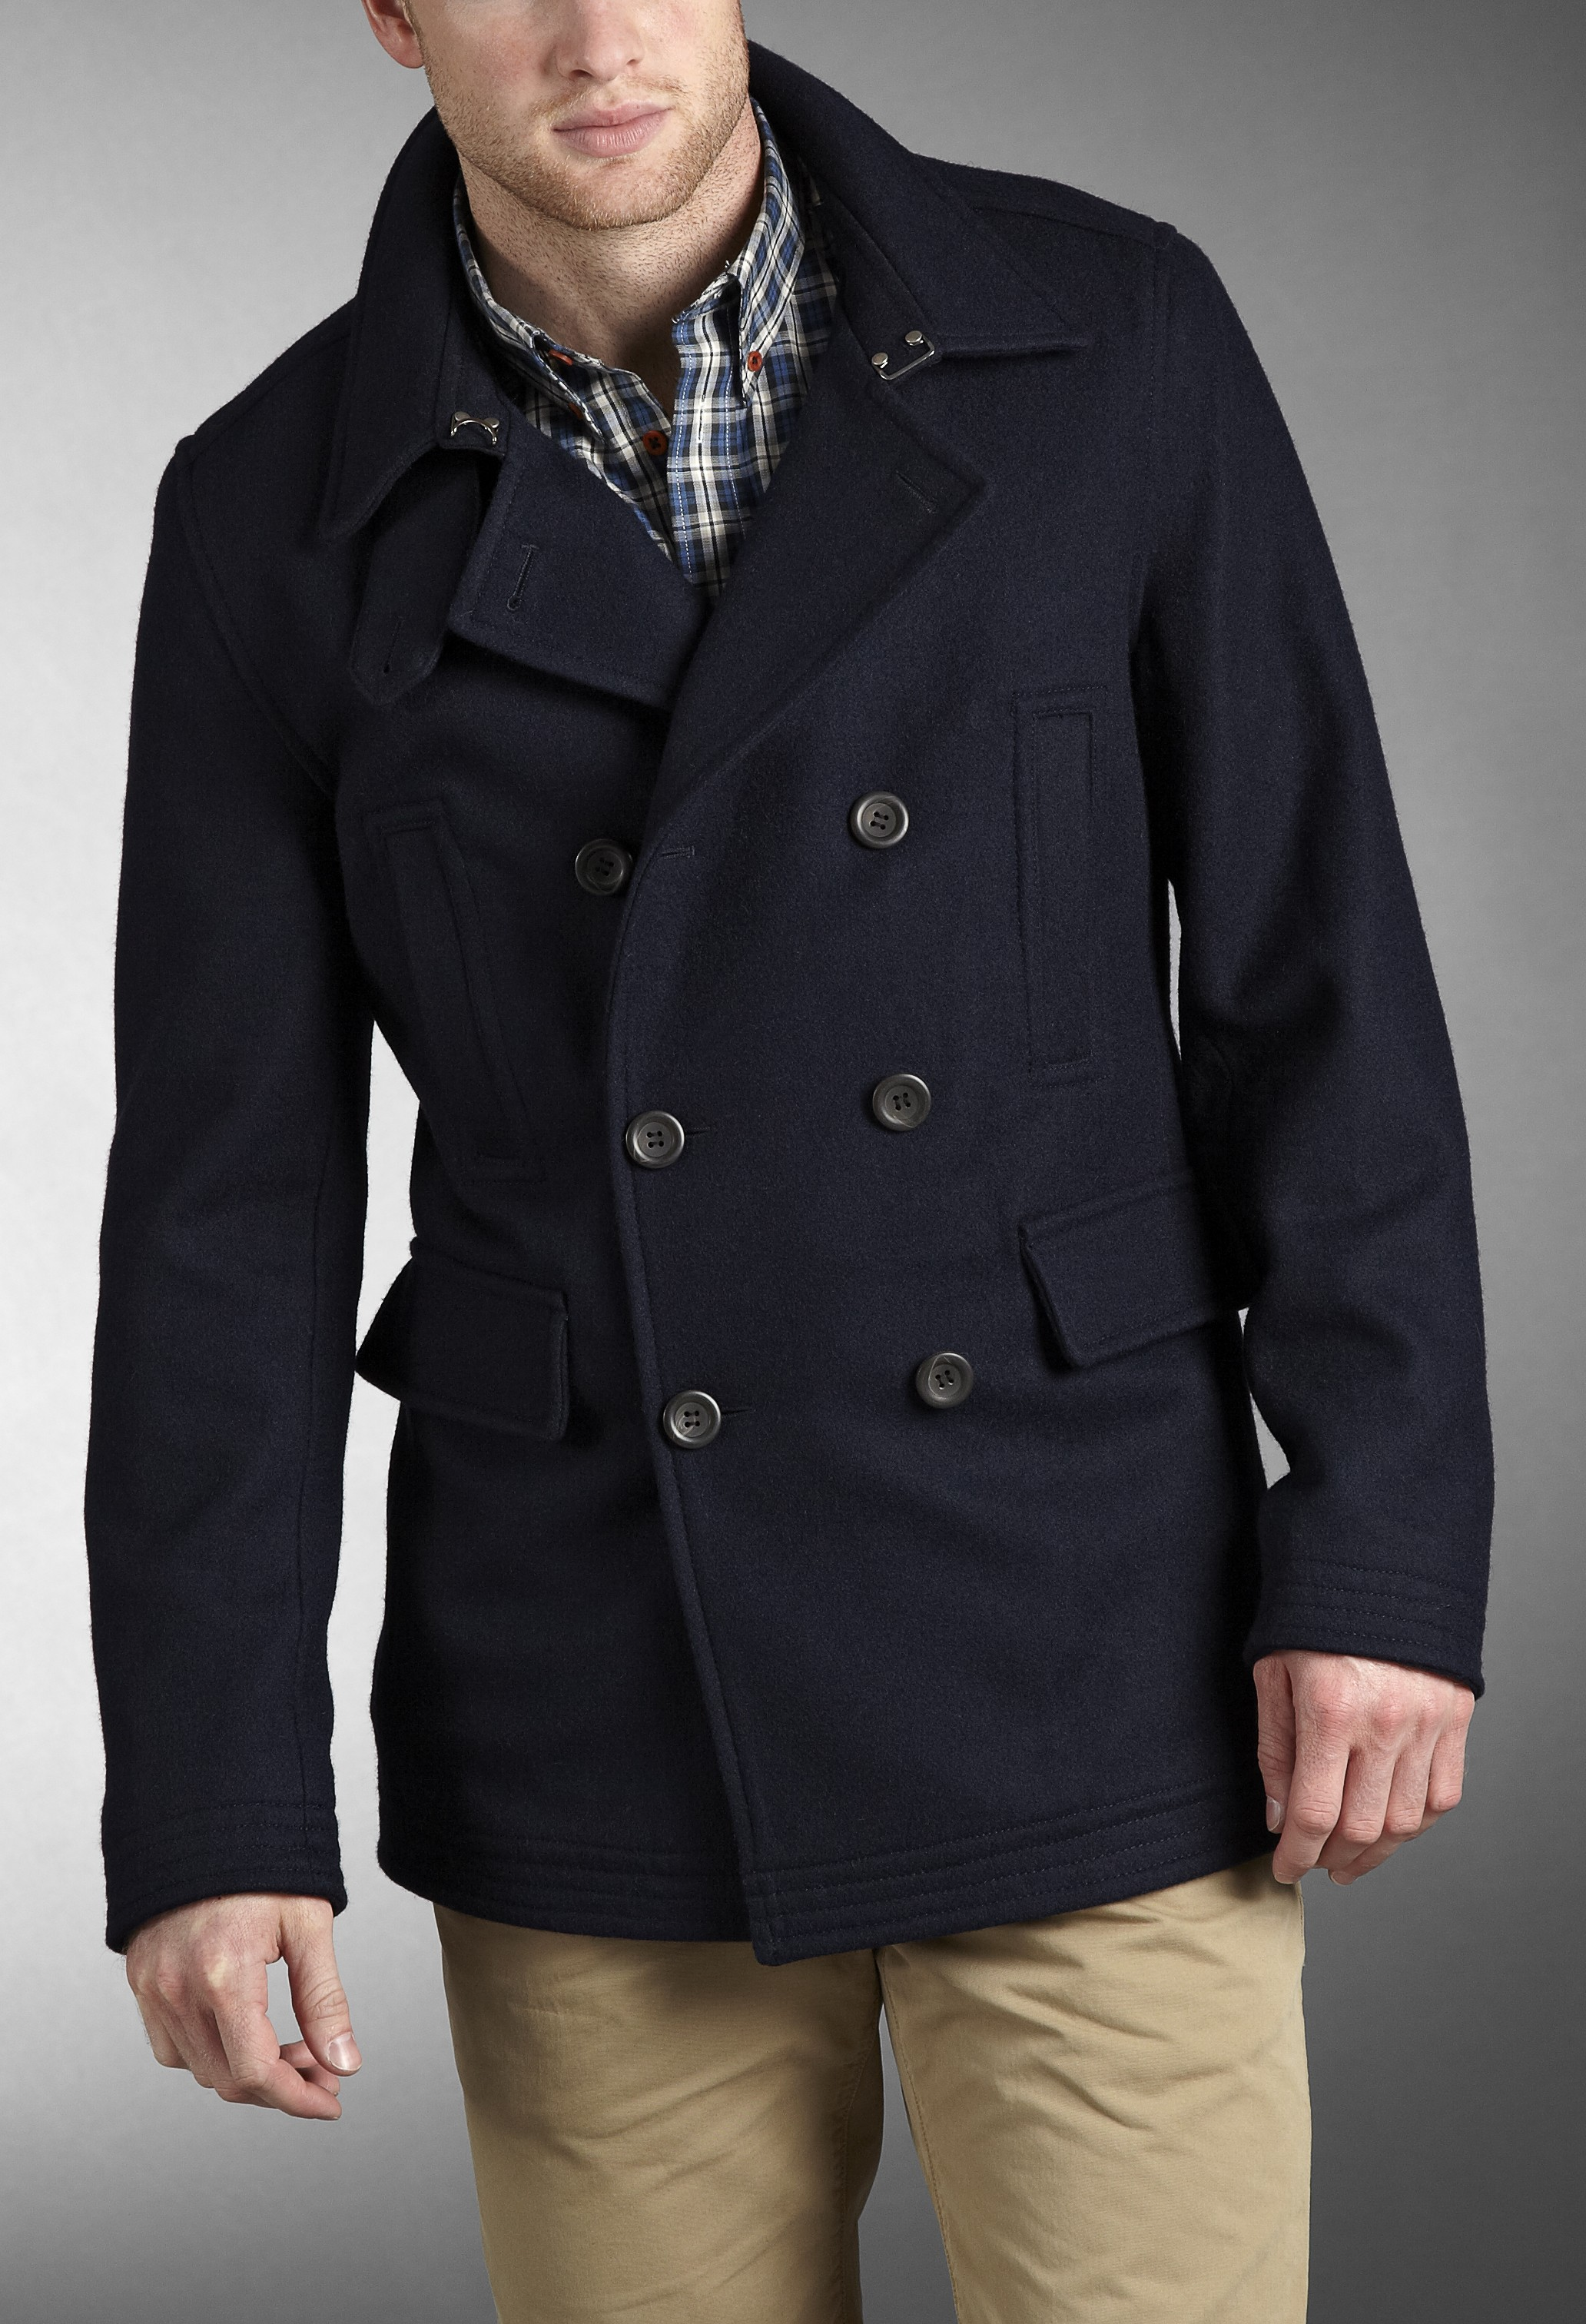 Find great deals on eBay for vintage mens pea coat. Shop with confidence.